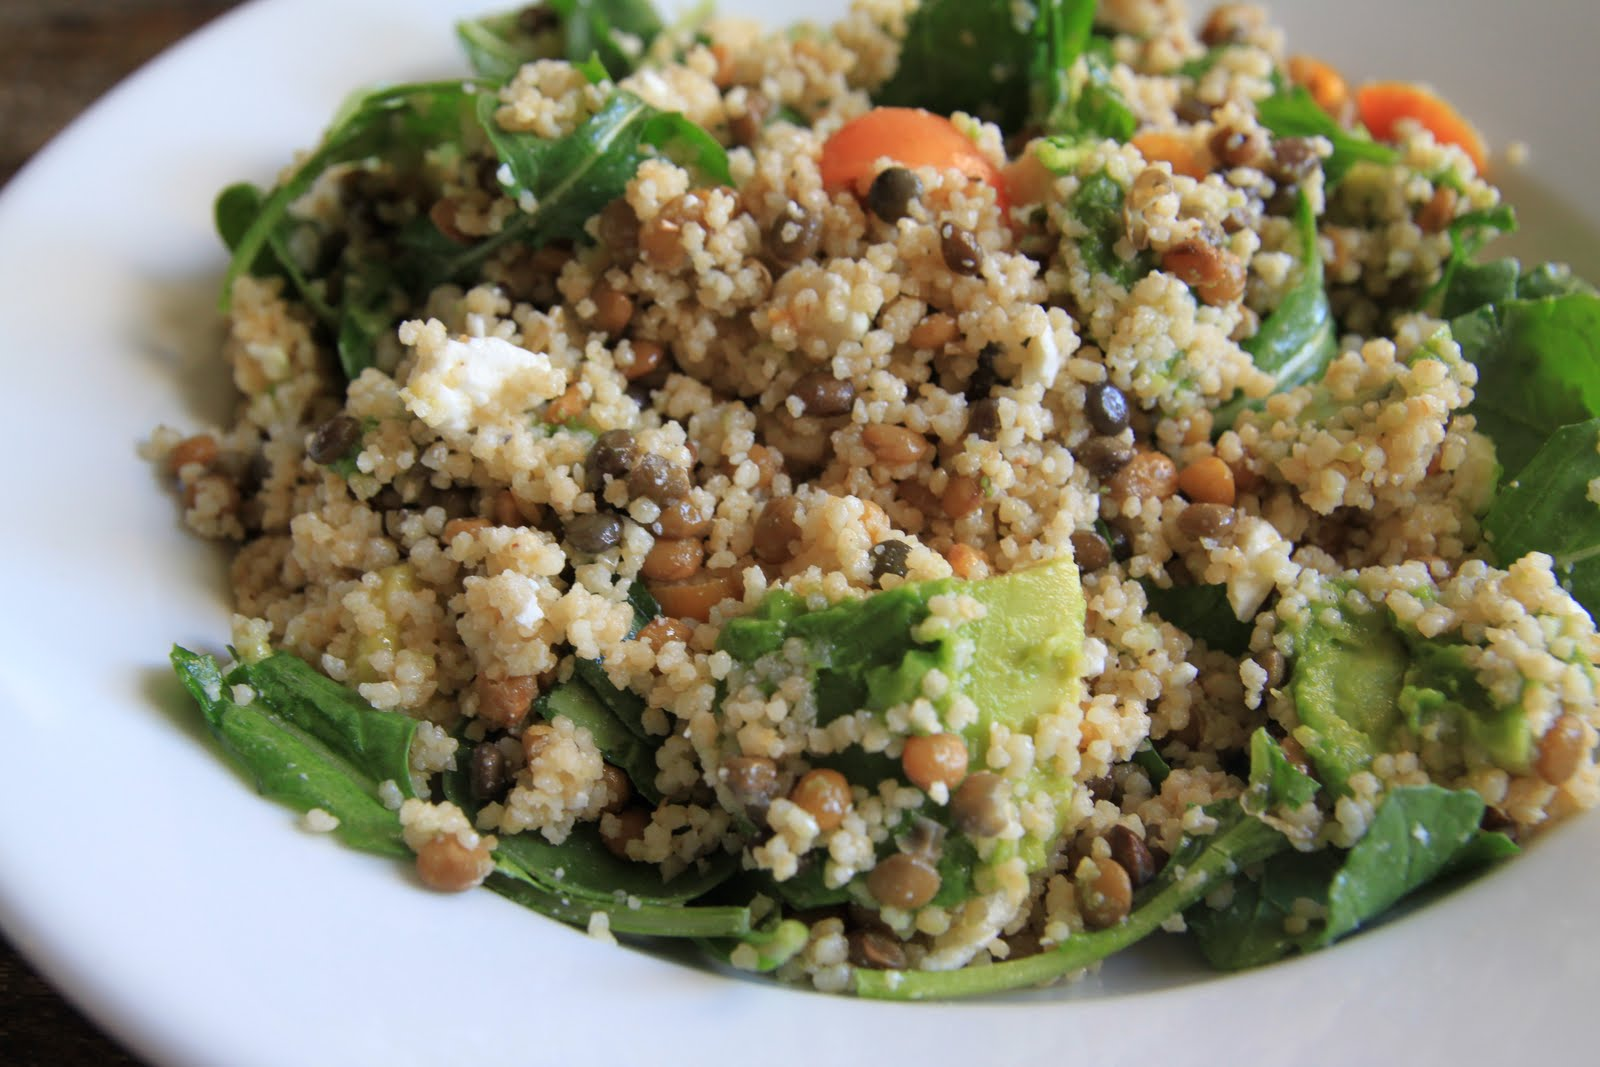 ... : Lentil Couscous Salad with Avocado, Heirloom Tomatoes and Arugula